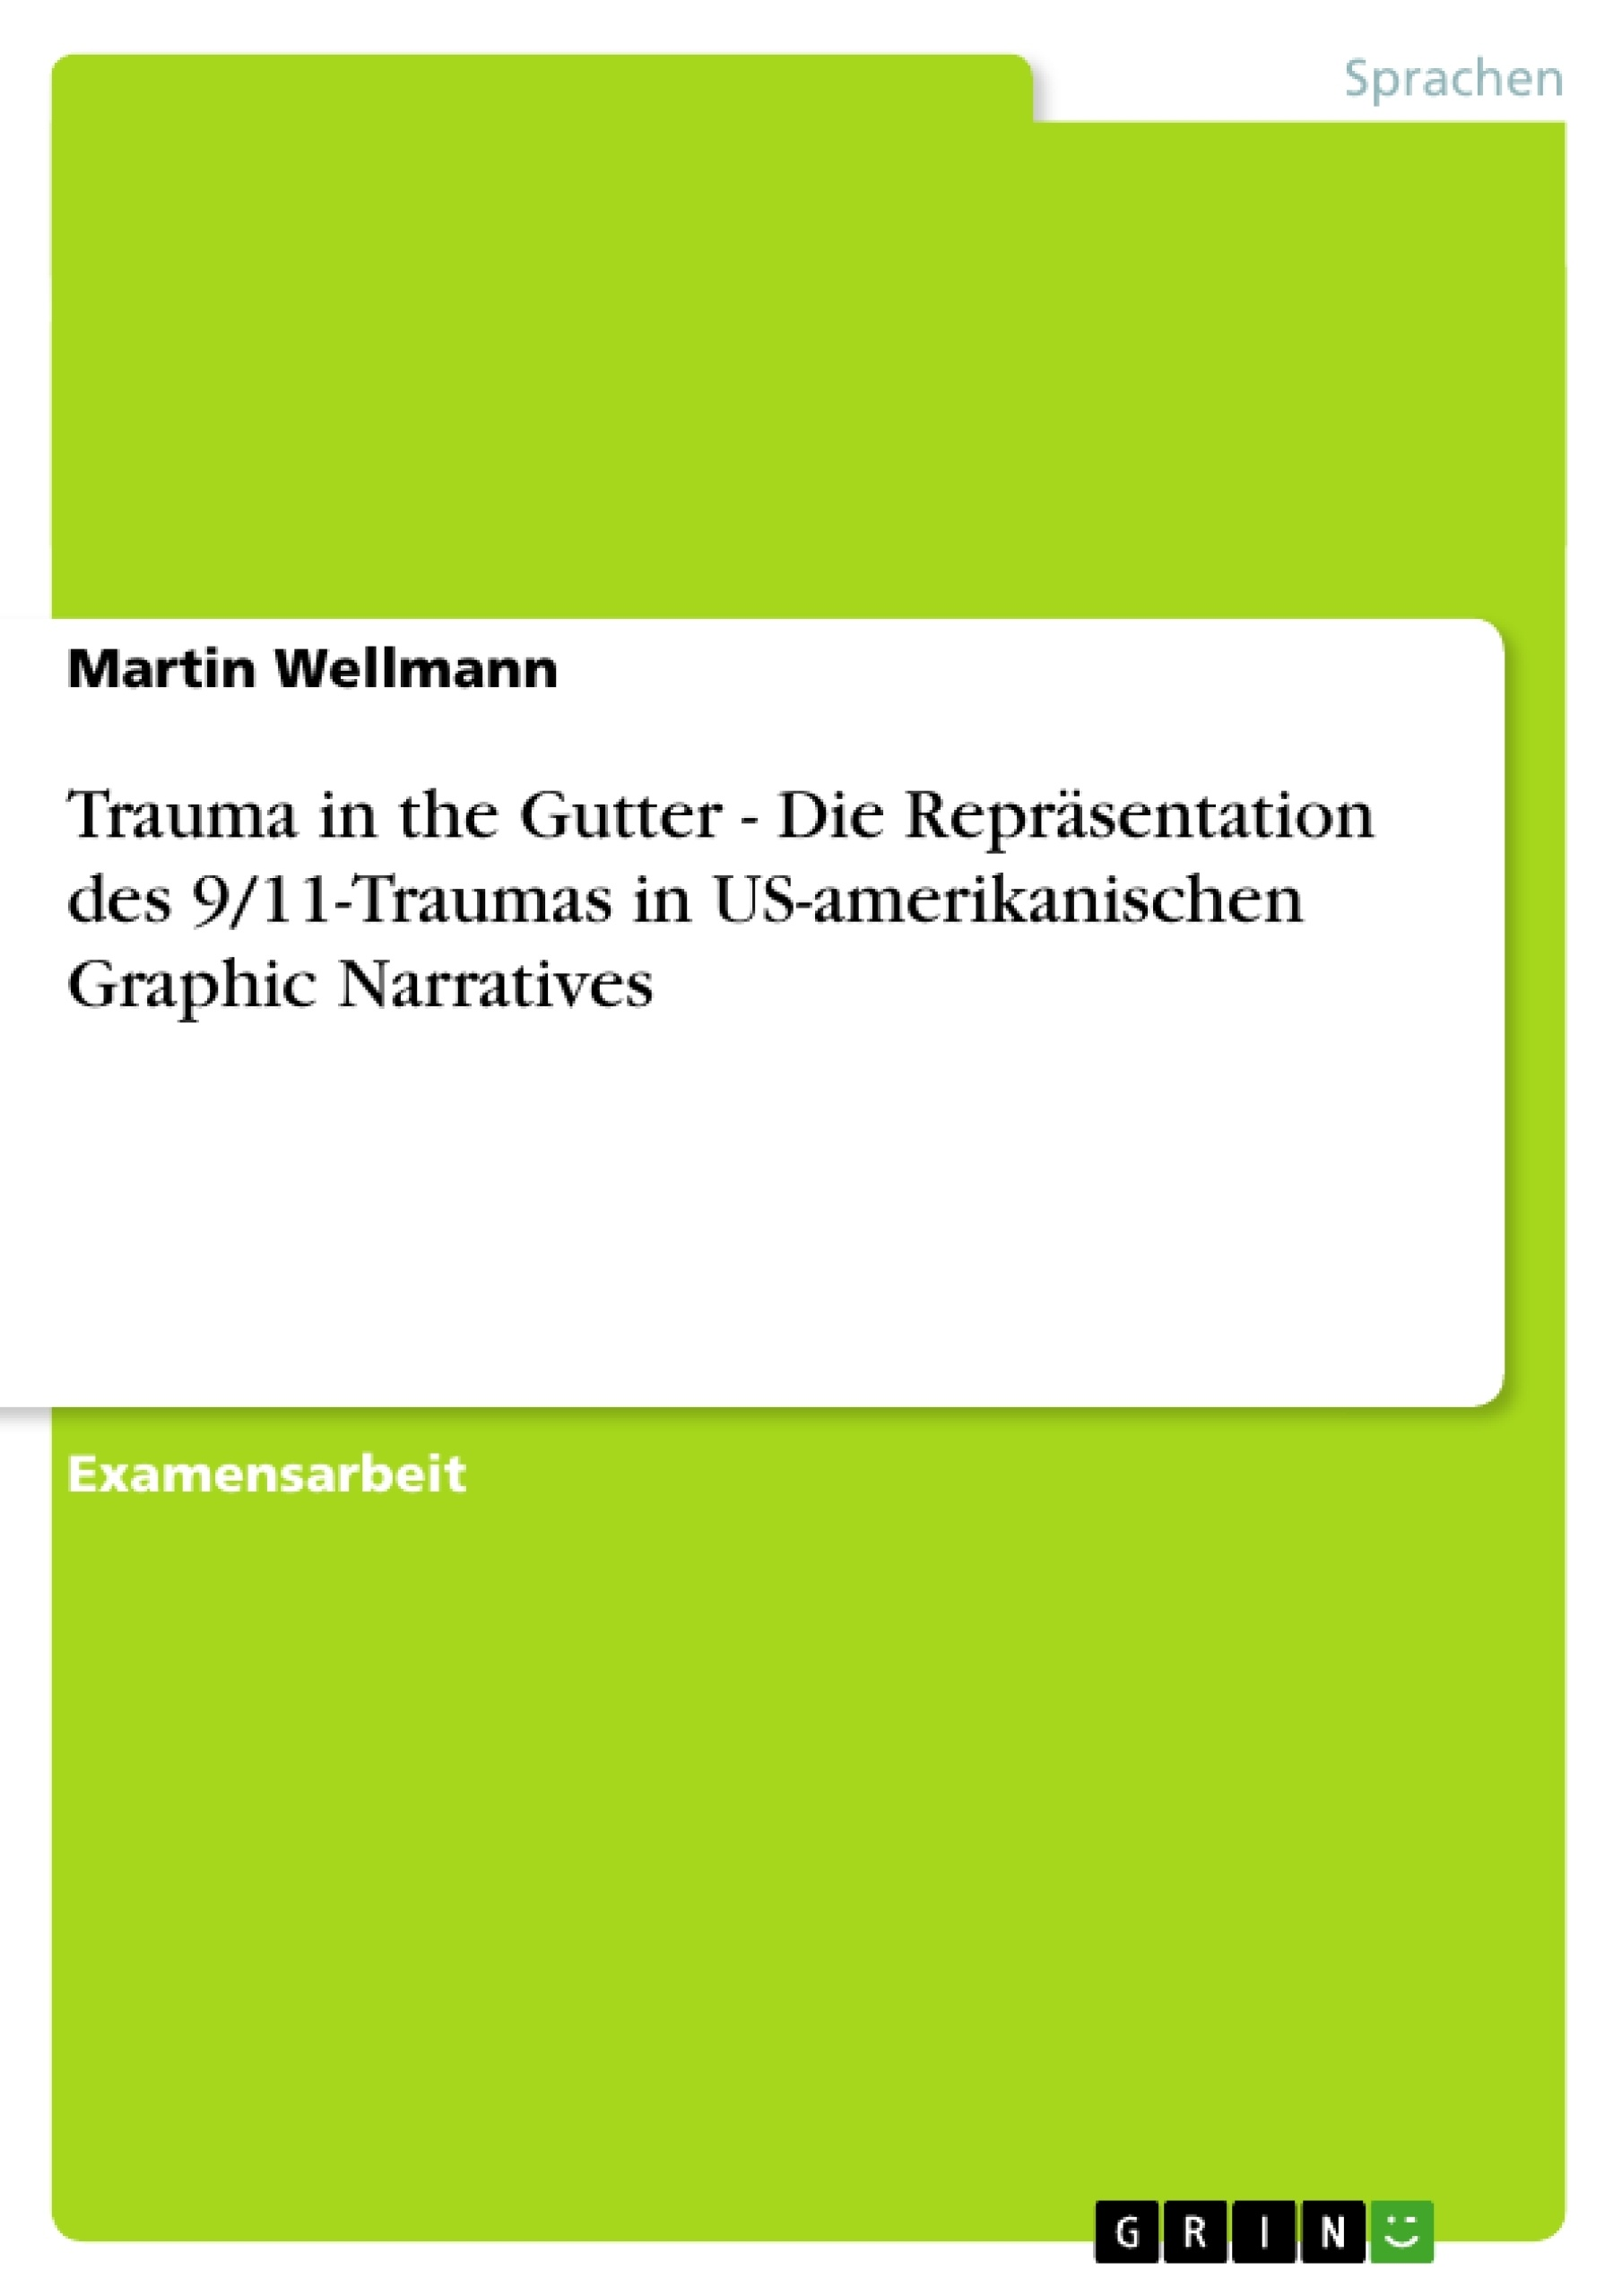 Titel: Trauma in the Gutter - Die Repräsentation des 9/11-Traumas in US-amerikanischen Graphic Narratives